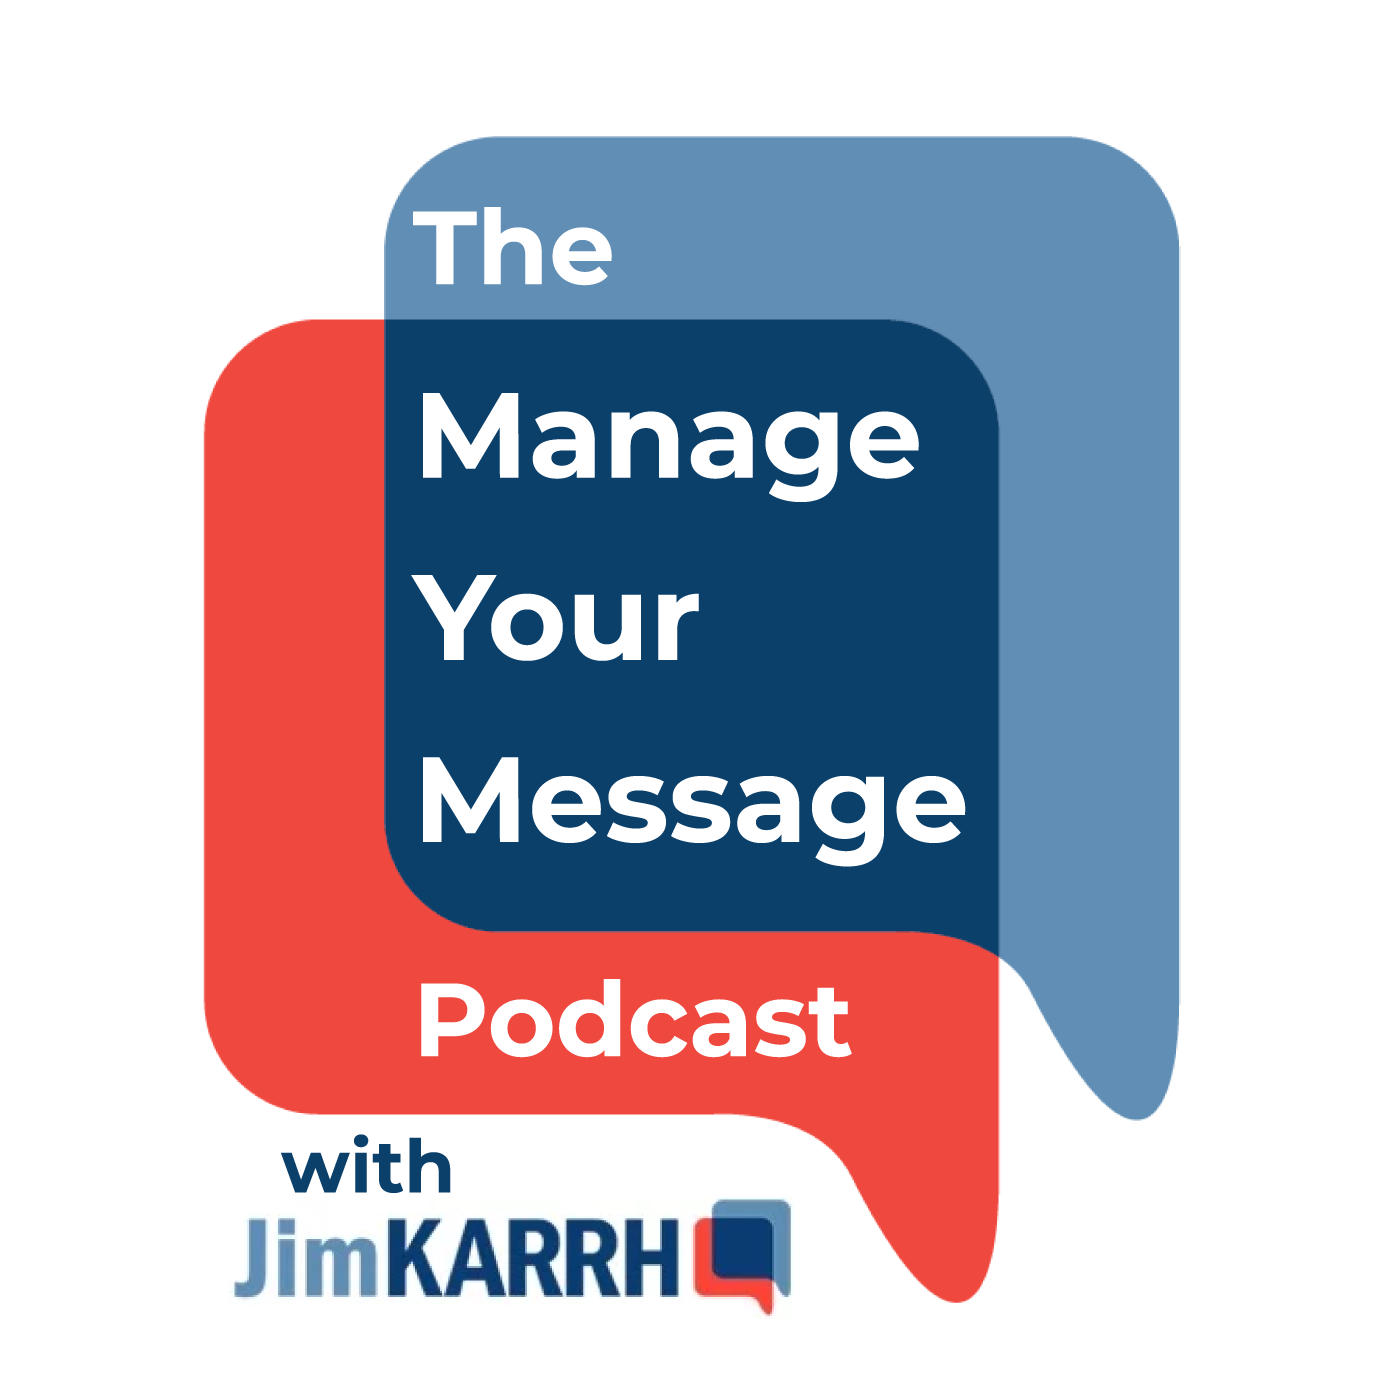 The Manage Your Message Podcast